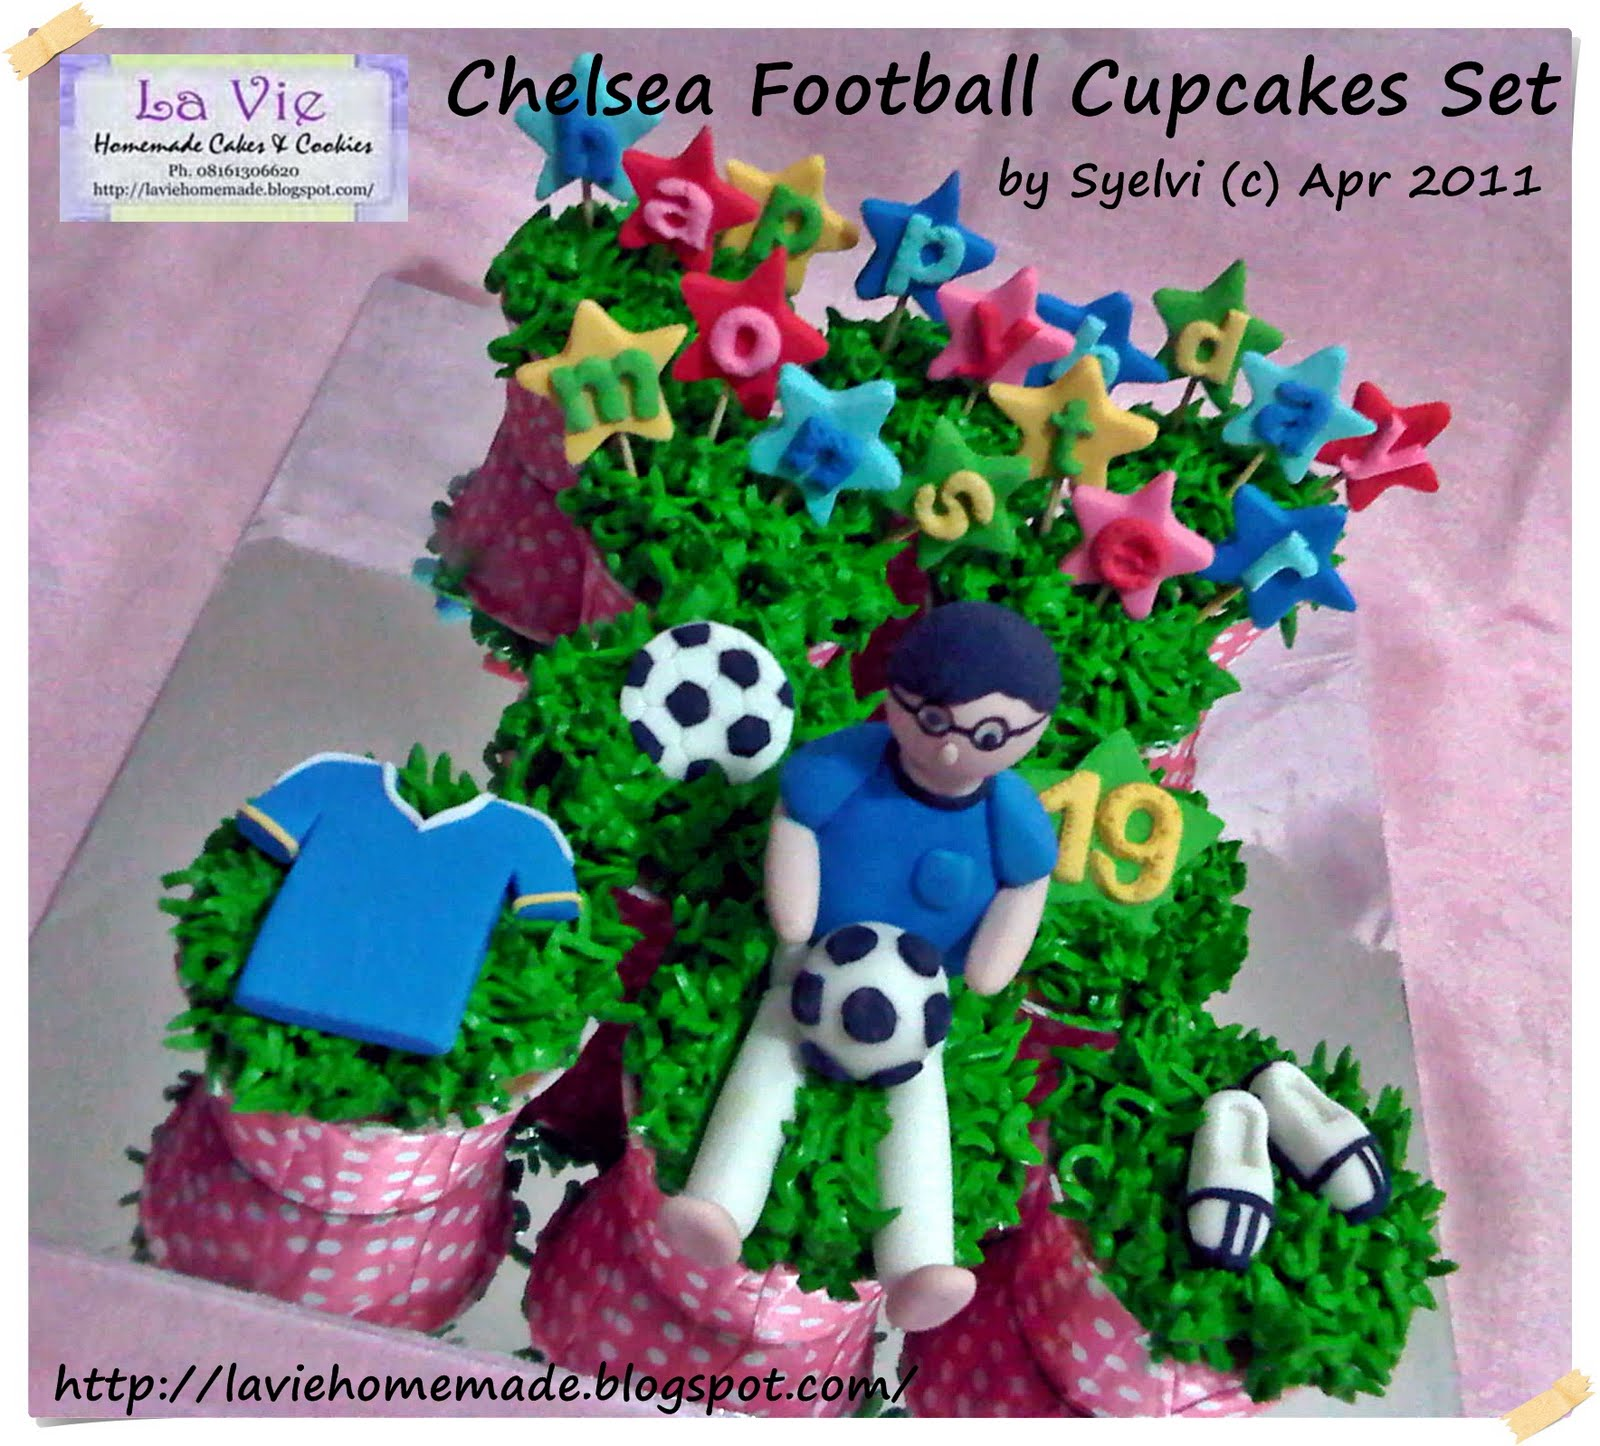 La Vie Homemade Cakes Cookies Chelsea Football Cupcakes Set